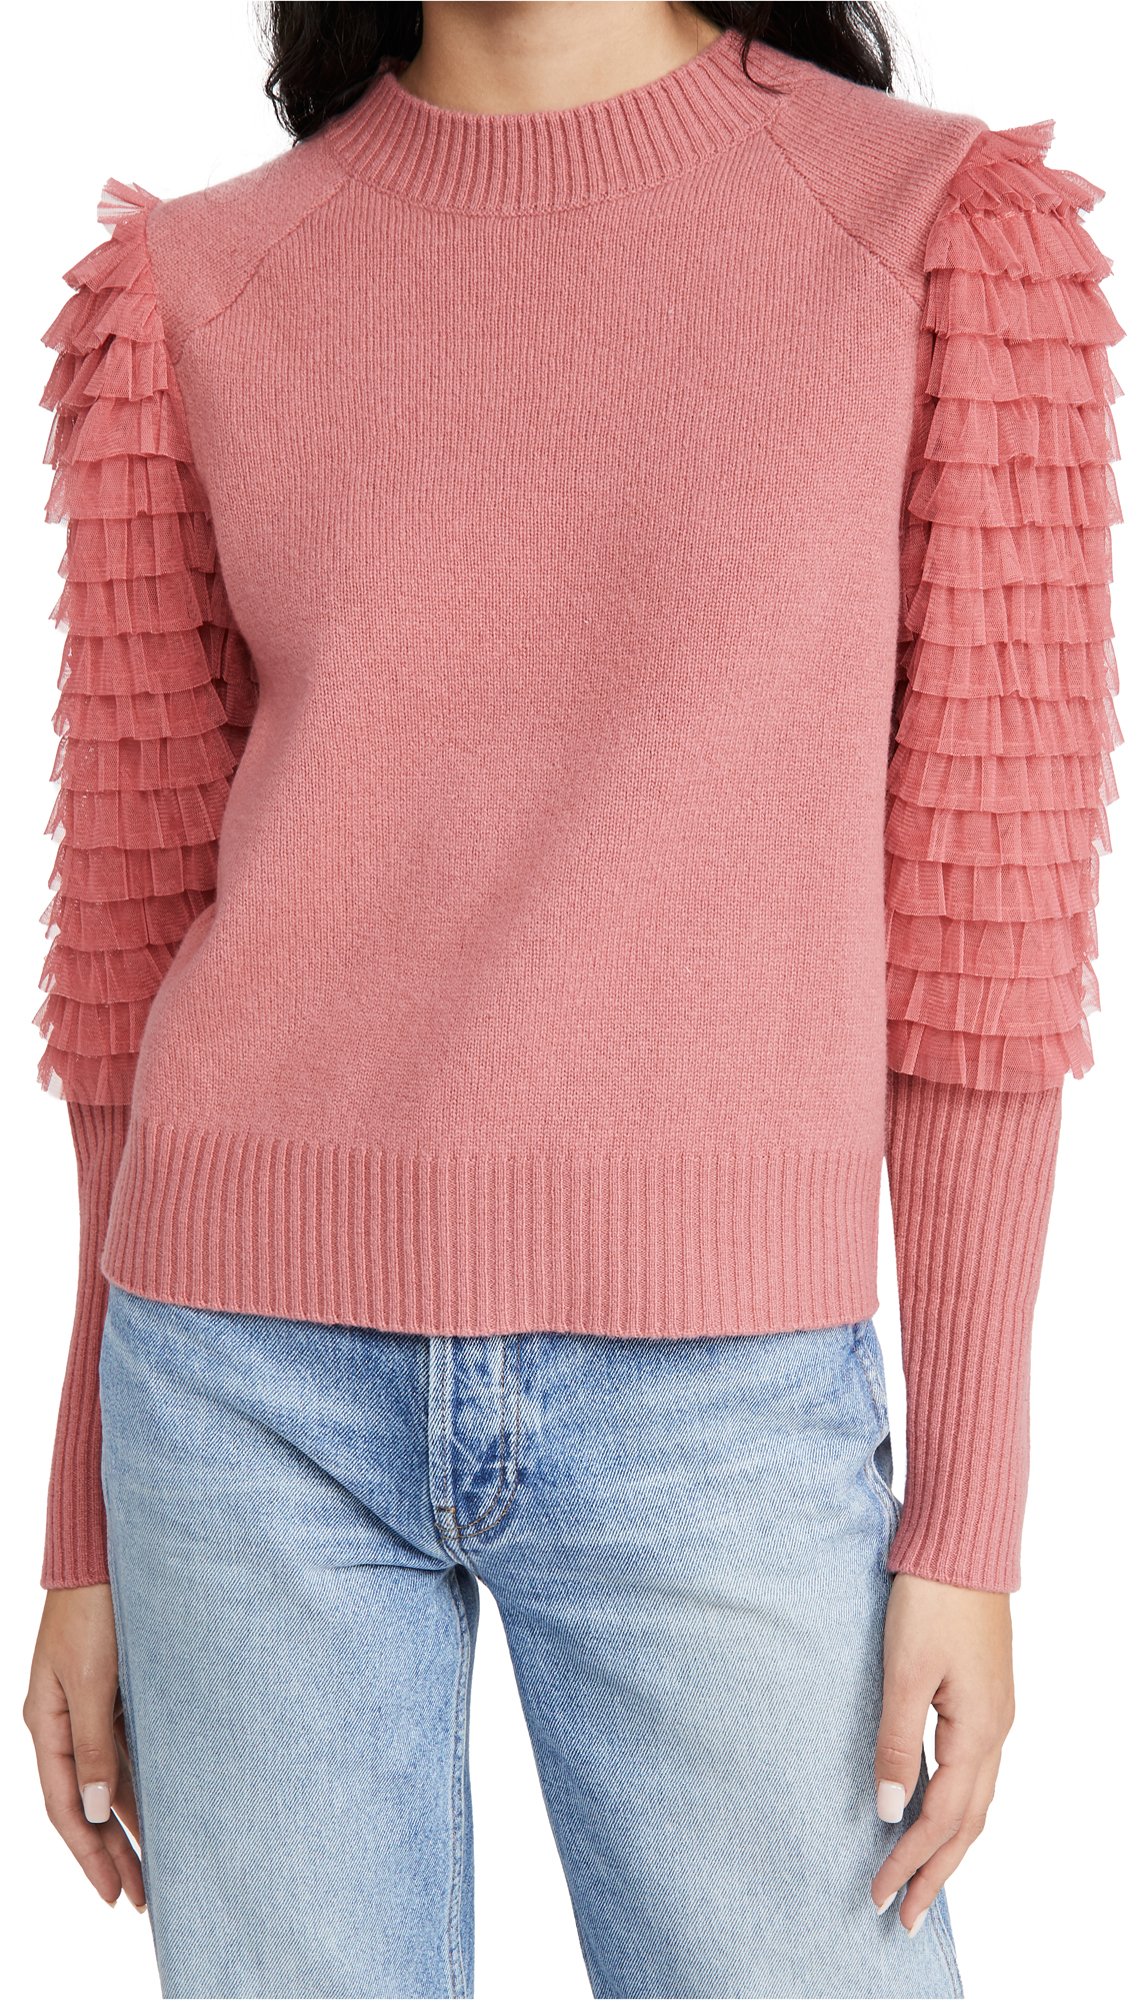 Sea Novia Embellished Princess Sweater